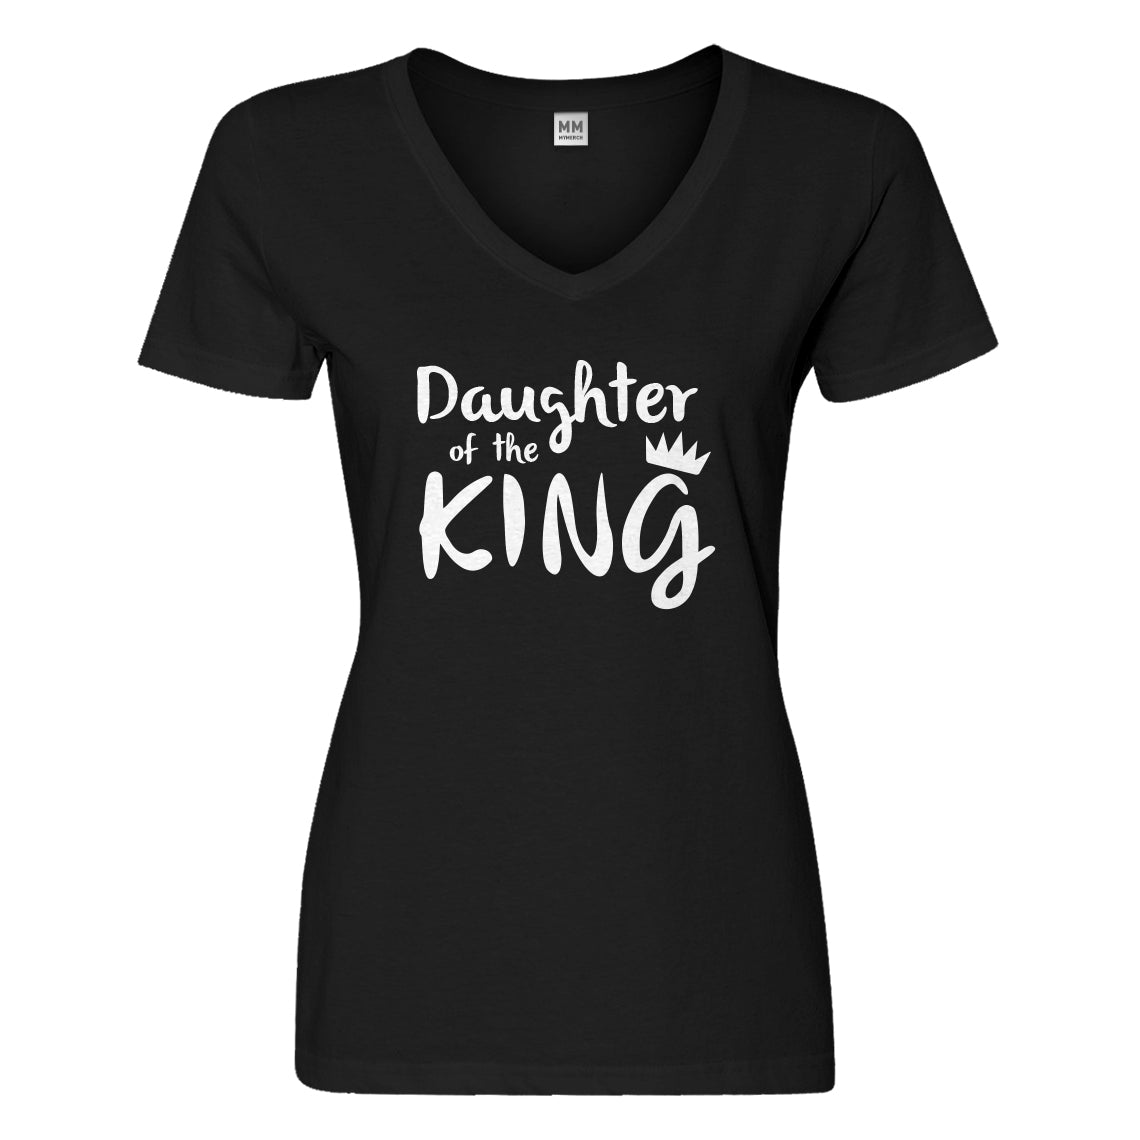 Womens Daughter of the King Vneck T-shirt